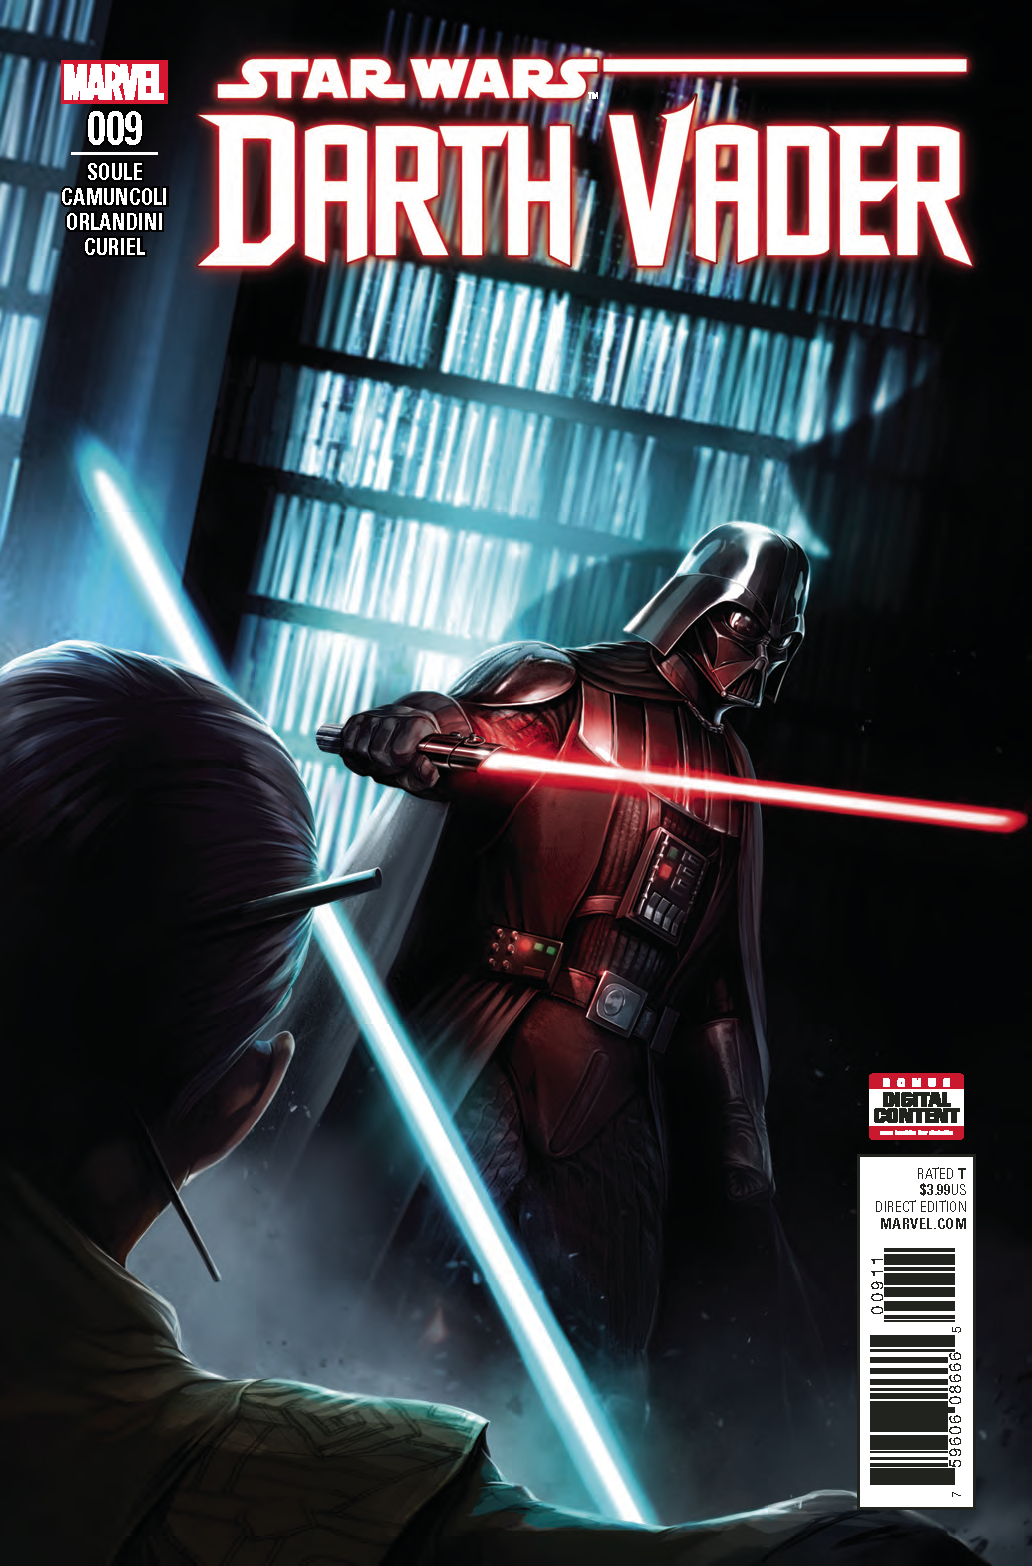 STAR WARS DARTH VADER #9